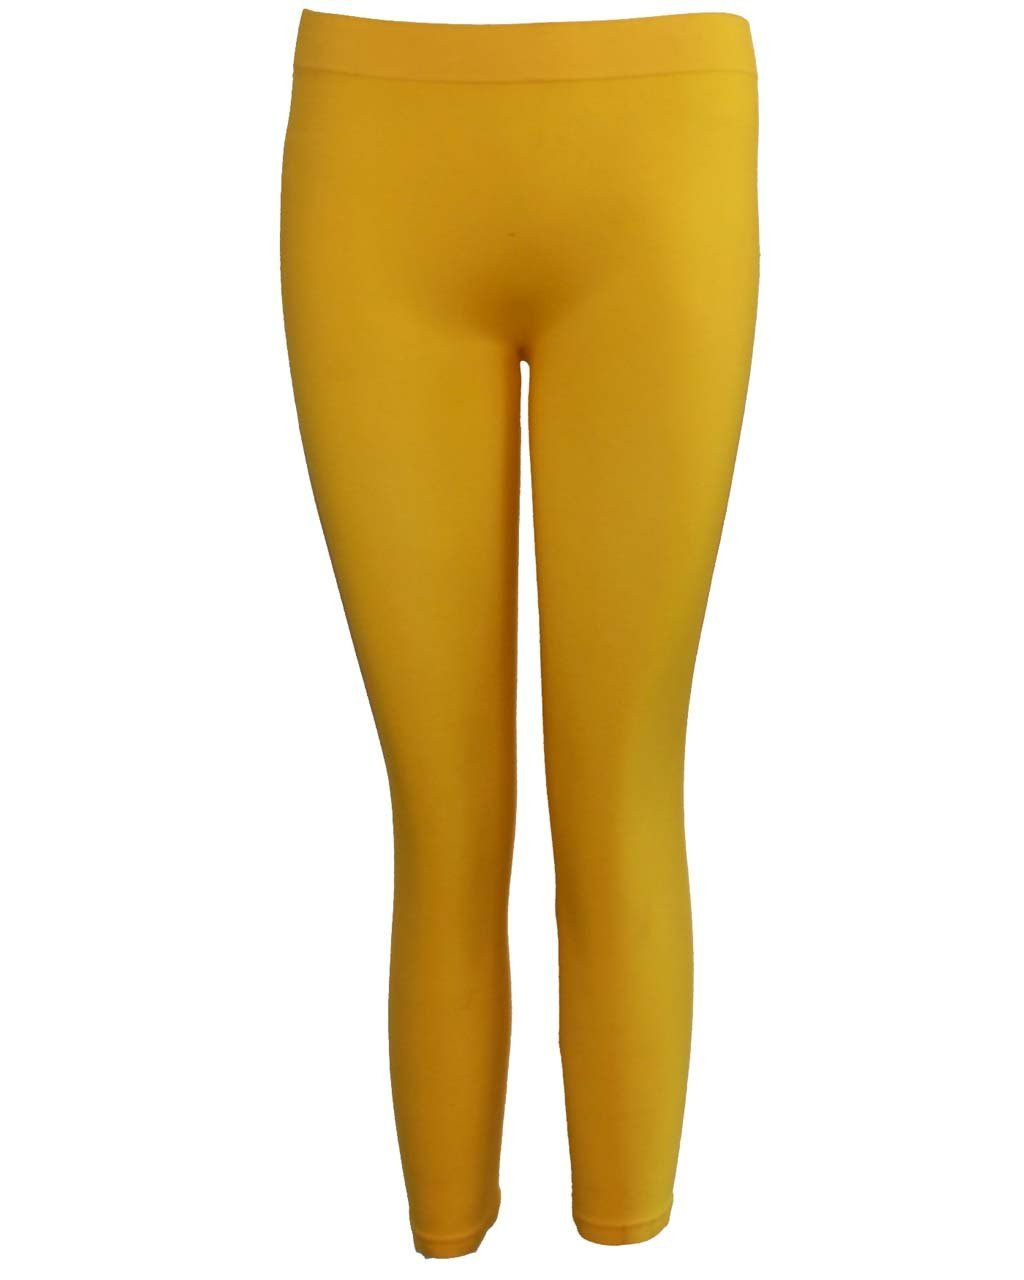 Buy low price, high quality yellow tights with worldwide shipping on qrqceh.tk By continuing to use AliExpress you accept our use of cookies (view more on our Privacy Policy). You can adjust your .